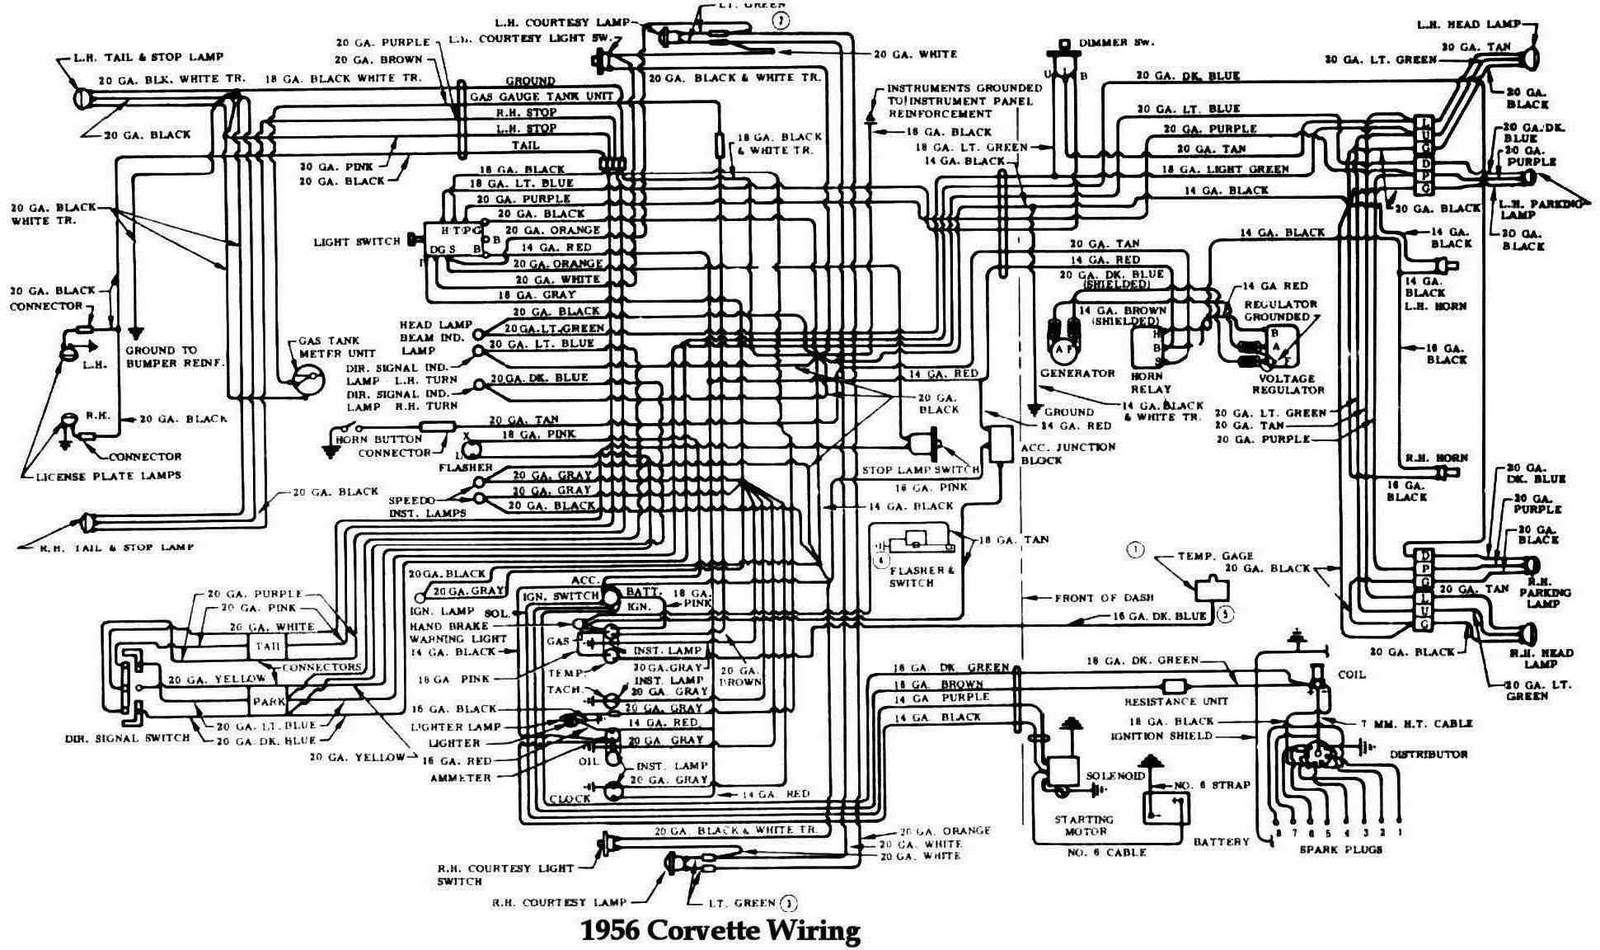 1981 Corvette Headlight Wiring Diagram - Wiring Diagram Data host-visible -  host-visible.portorhoca.it | 1981 Corvette Headlight Wiring Diagram |  | host-visible.portorhoca.it